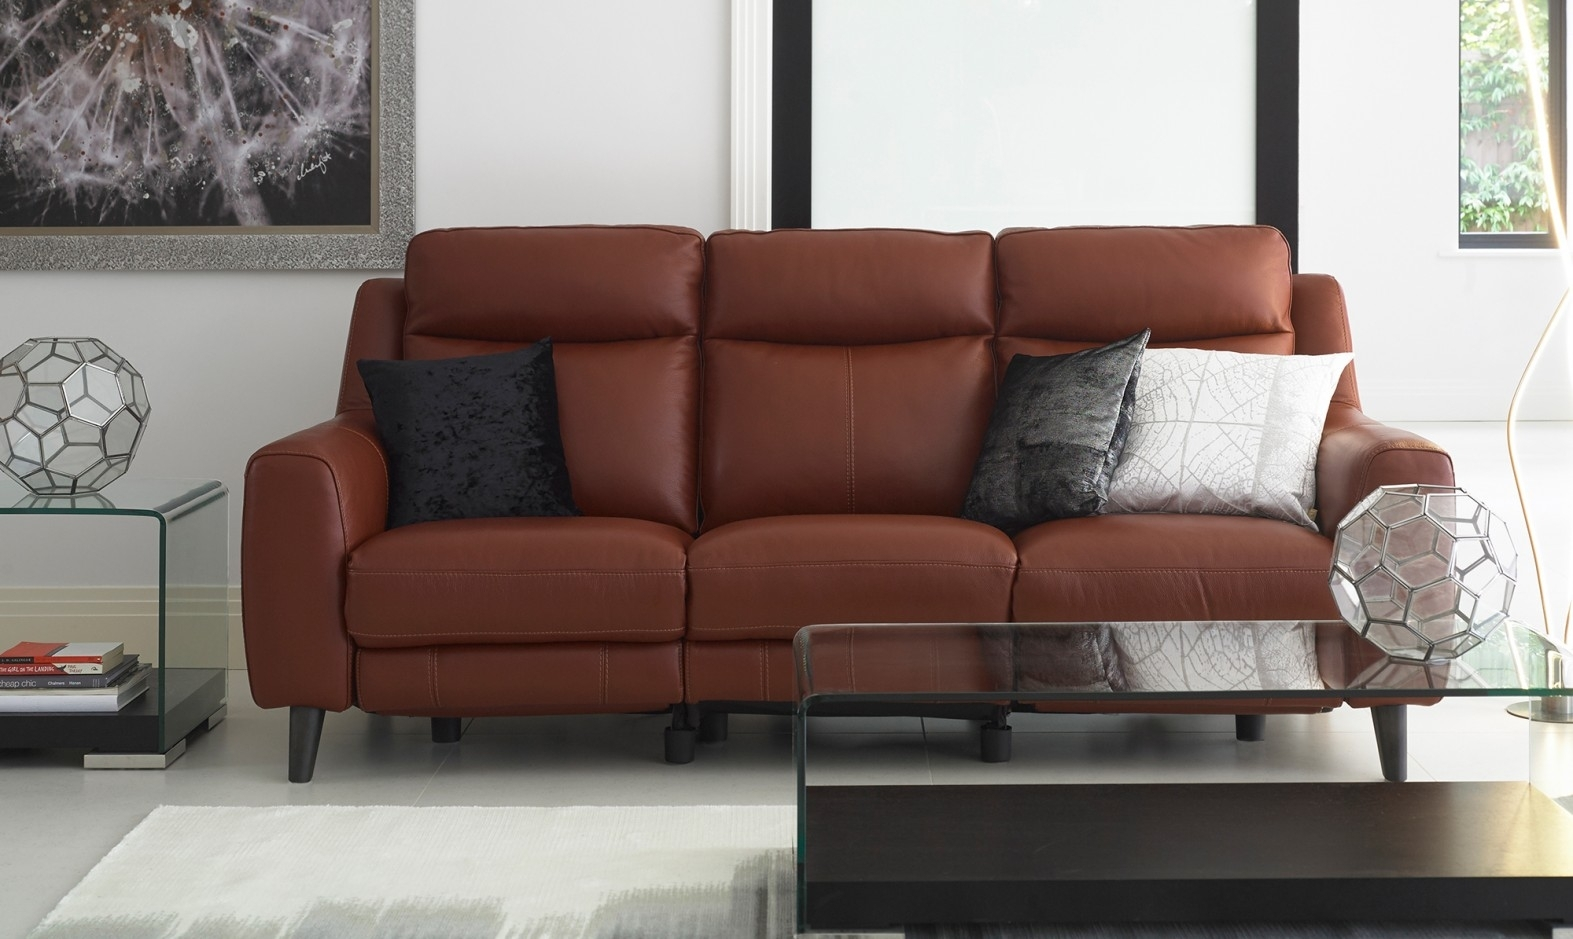 Recliner Sofas In Leather & Fabric | Fishpools With Recliner Sofas (View 9 of 10)